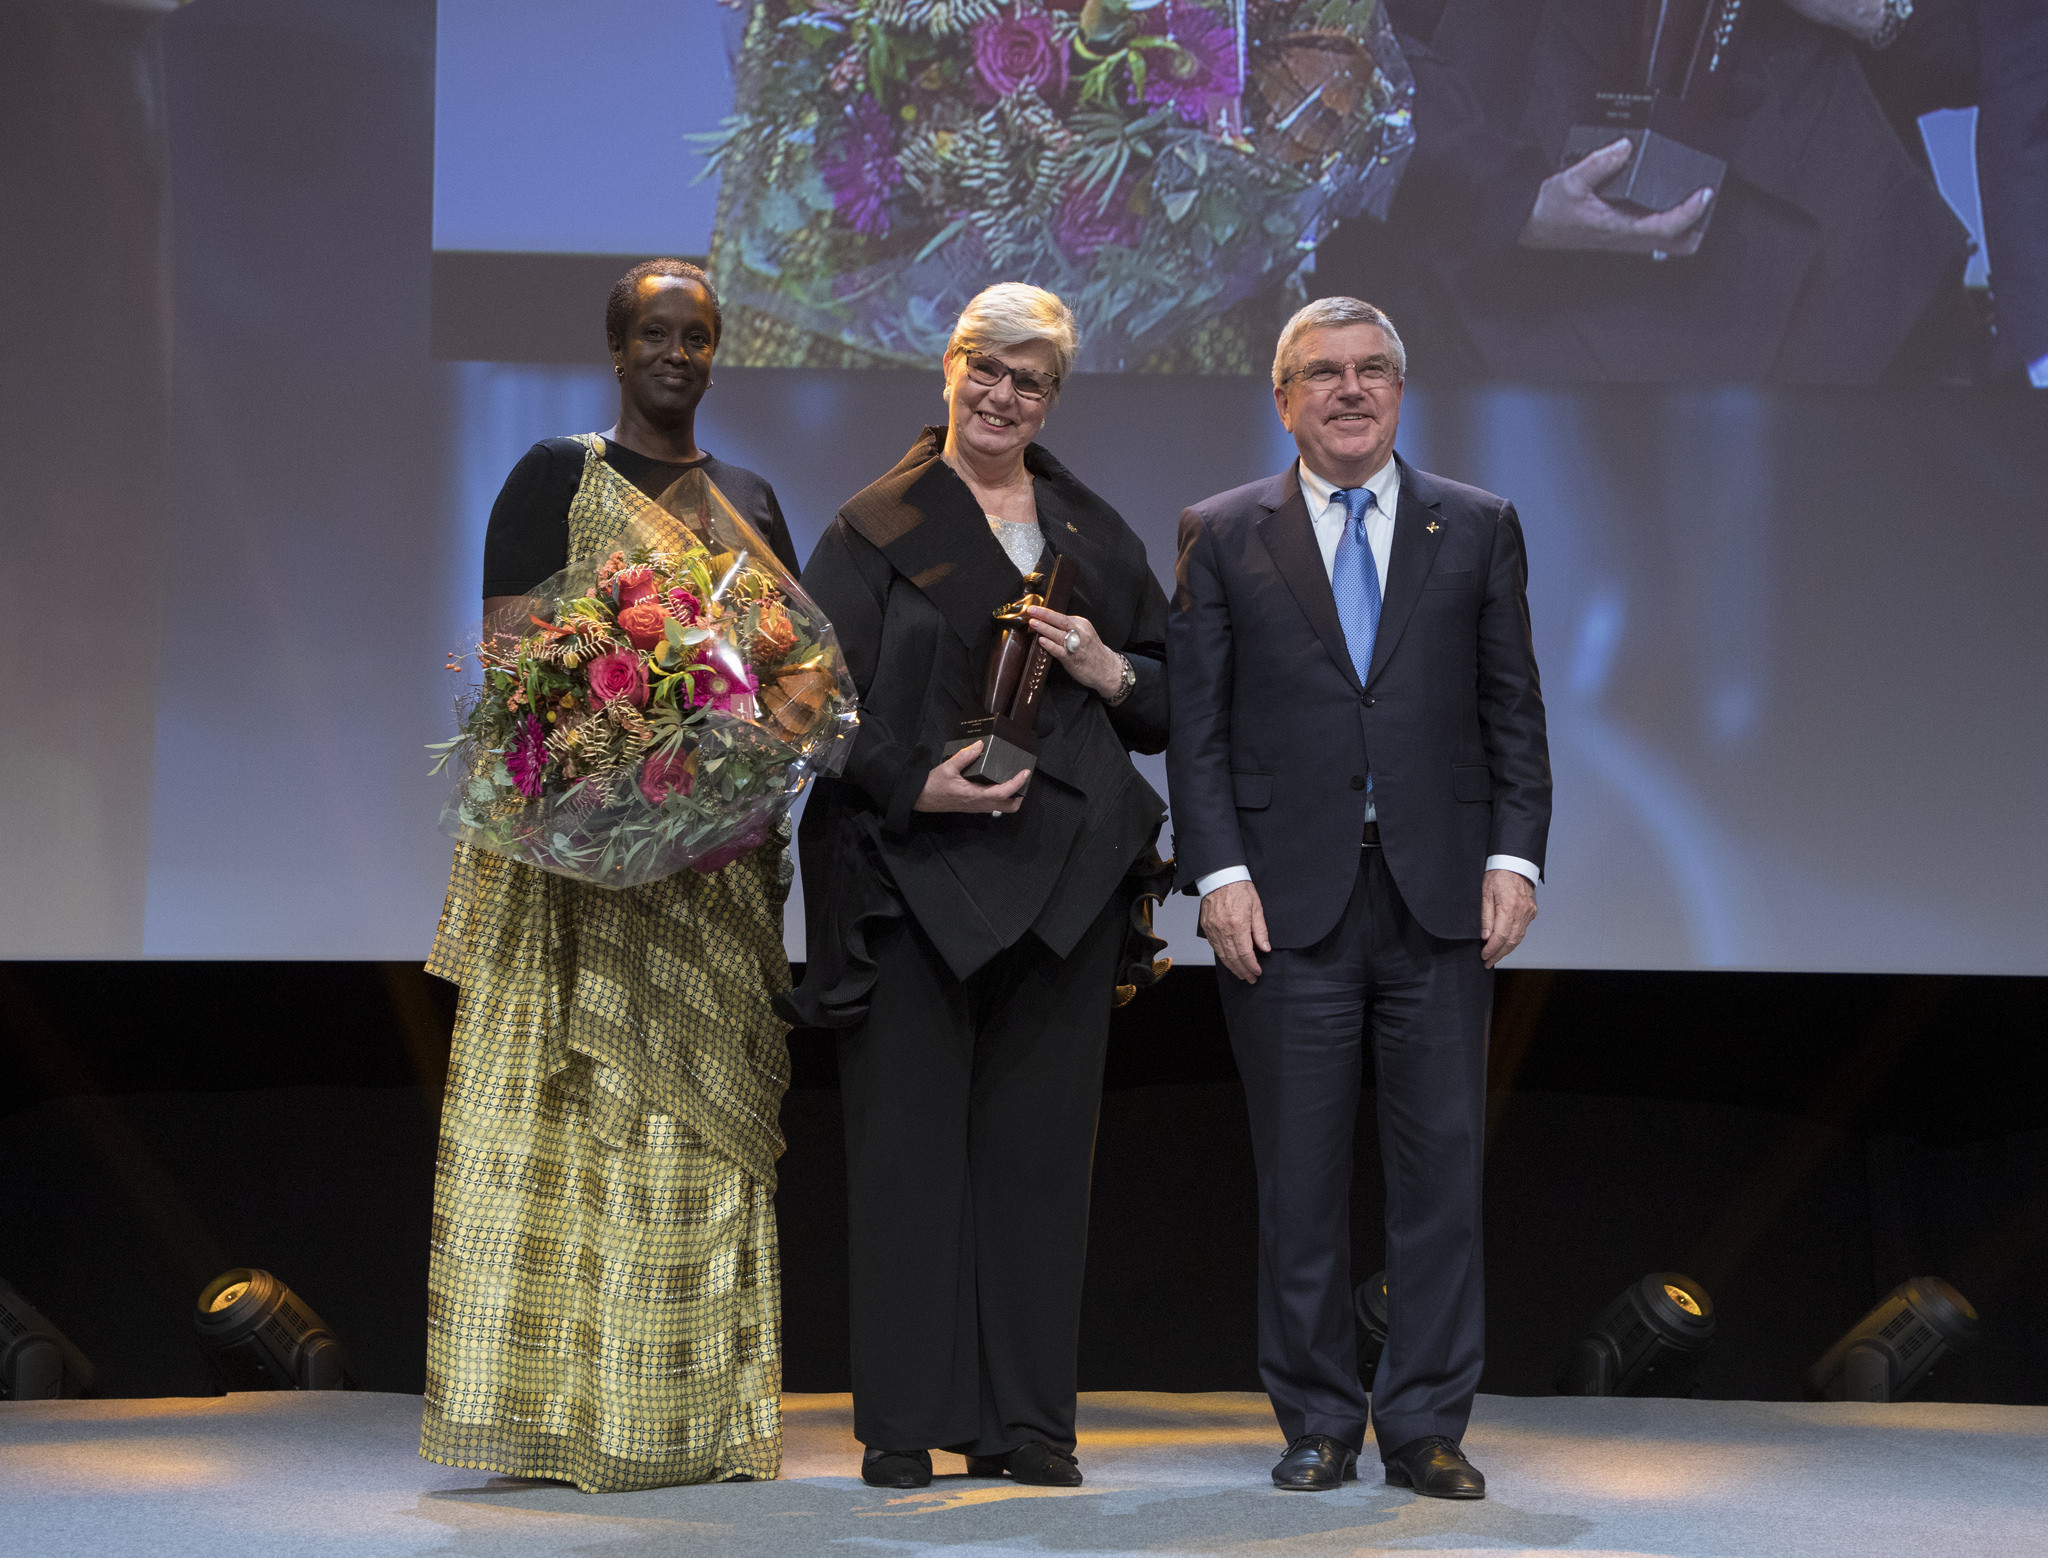 Finland's Birgitta Kervinen, centre, winner of the 2017 Women and Sport World Trophy, encouraged the game-changers to continue demanding for action ©IOC